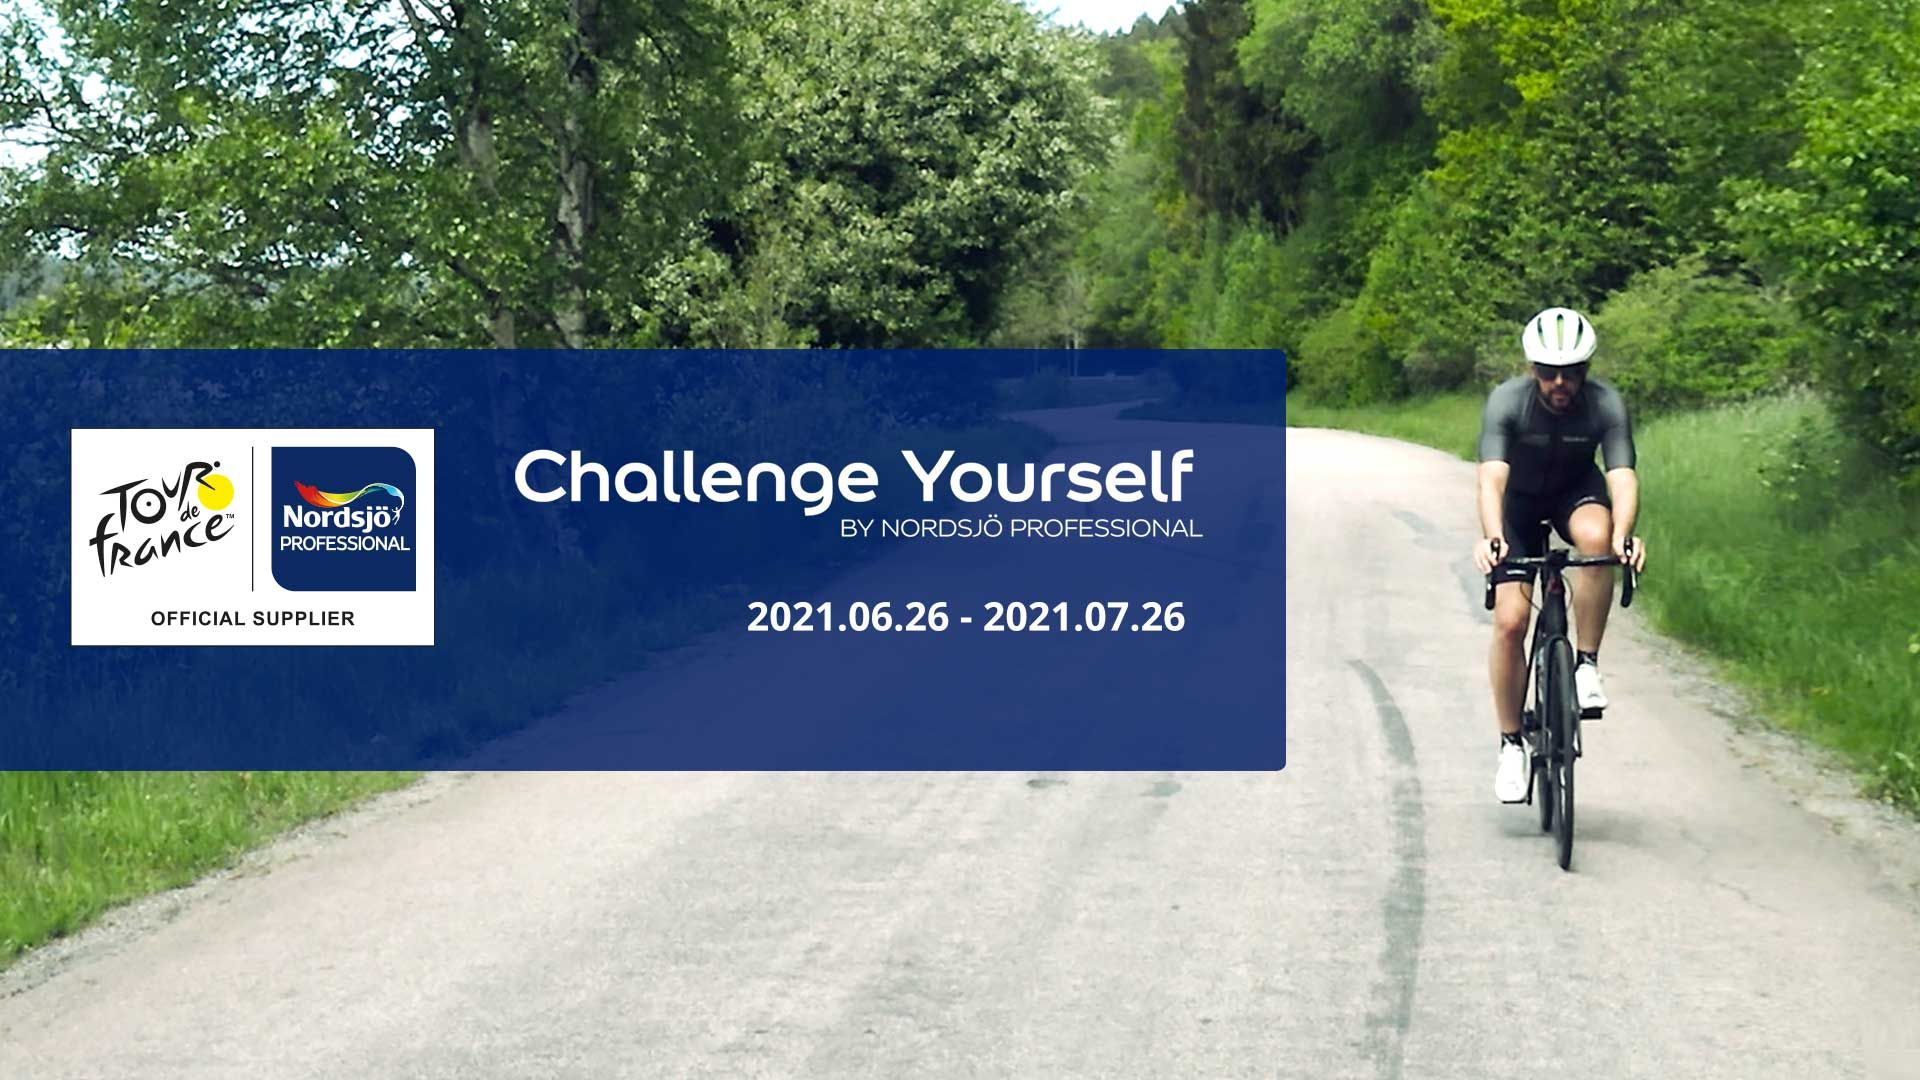 Challenge yourself by Nordsjö Professional 25/7